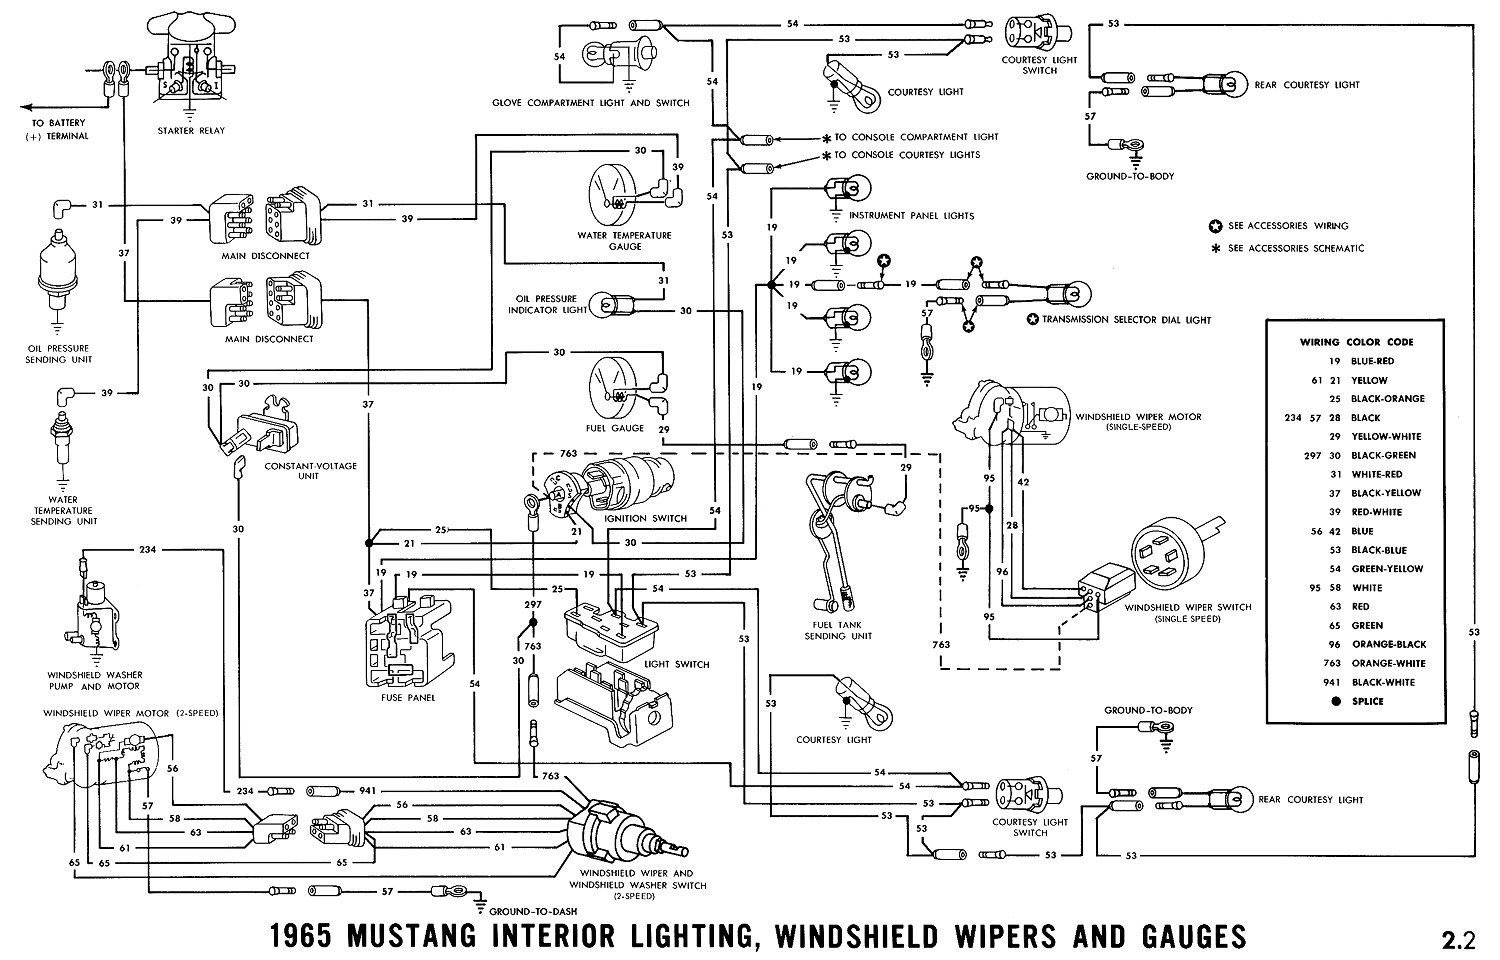 1965g 1965 mustang wiring diagrams average joe restoration 1966 mustang wiring diagrams at webbmarketing.co